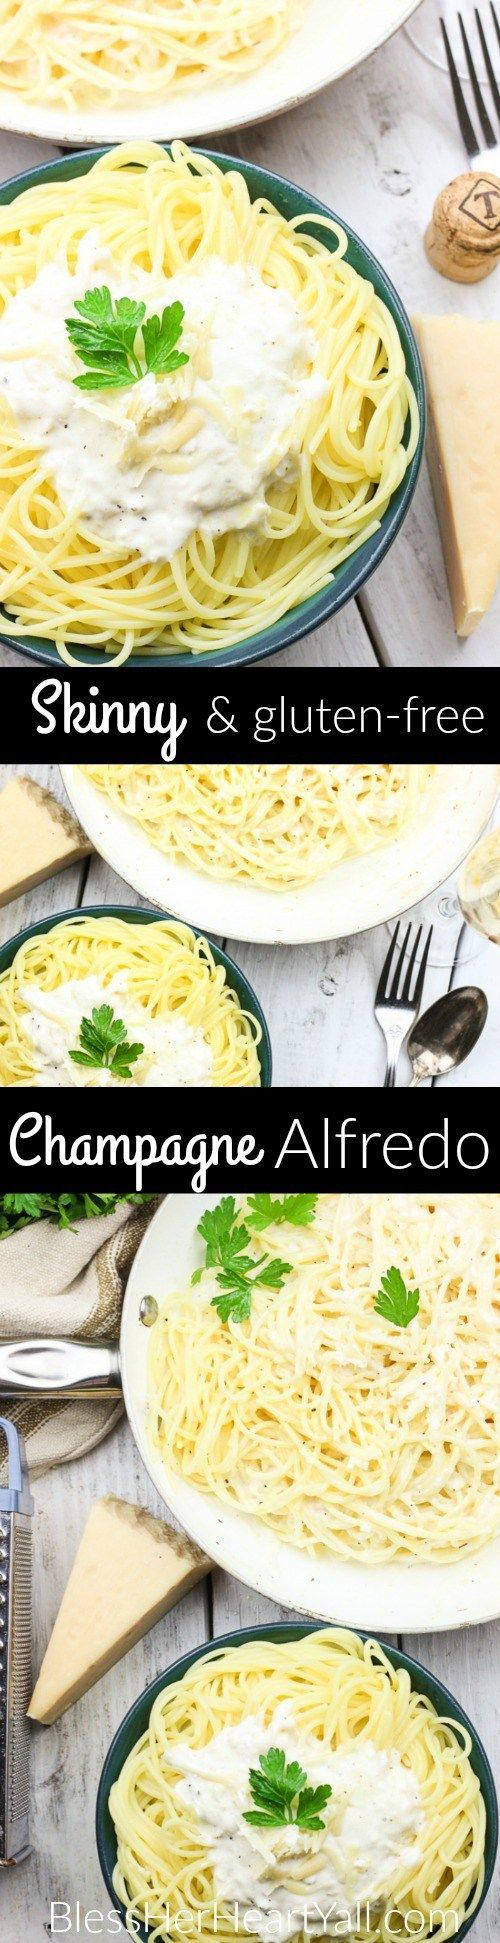 This Skinny Champagne Alfredo recipe is amazing and quick to make! Instead of those heavy unhealthy creams, healthy greek yogurt is used! And if we needed a reason to use up extra New Year's Eve champagne, here it is! It is used in lieu of chicken broth or white wine in the typical alfredo sauce! Cream, healthy, fun deliciousness! www.blessherheartyall.com